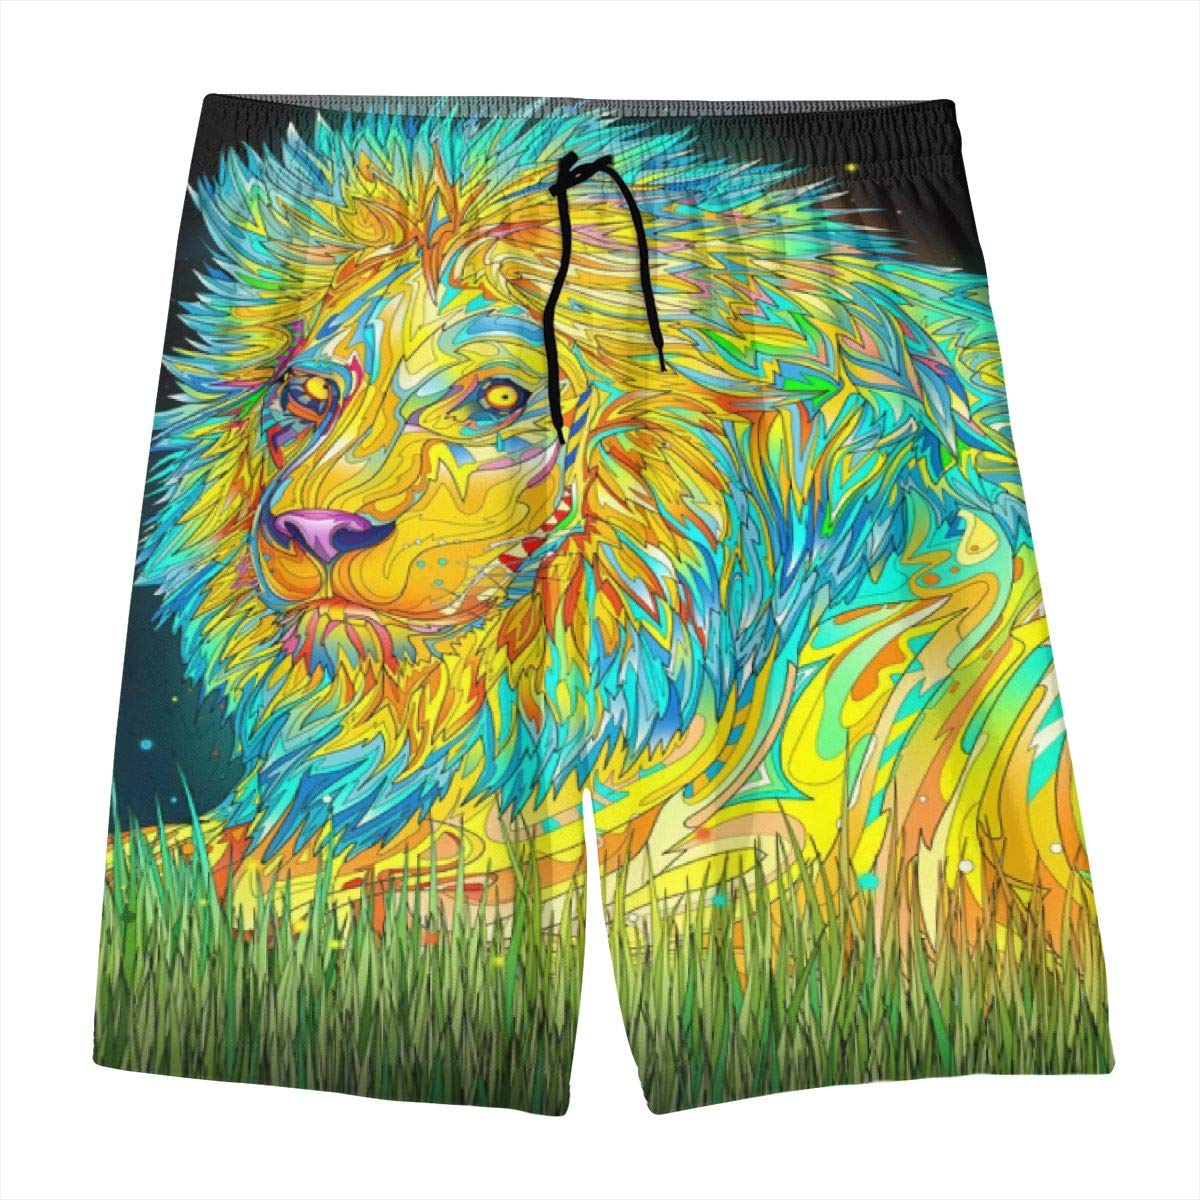 Cool Modern Lion Art Safari Wild Coloful Teen Swim Trunks Bathing Suit Shorts Board Beach